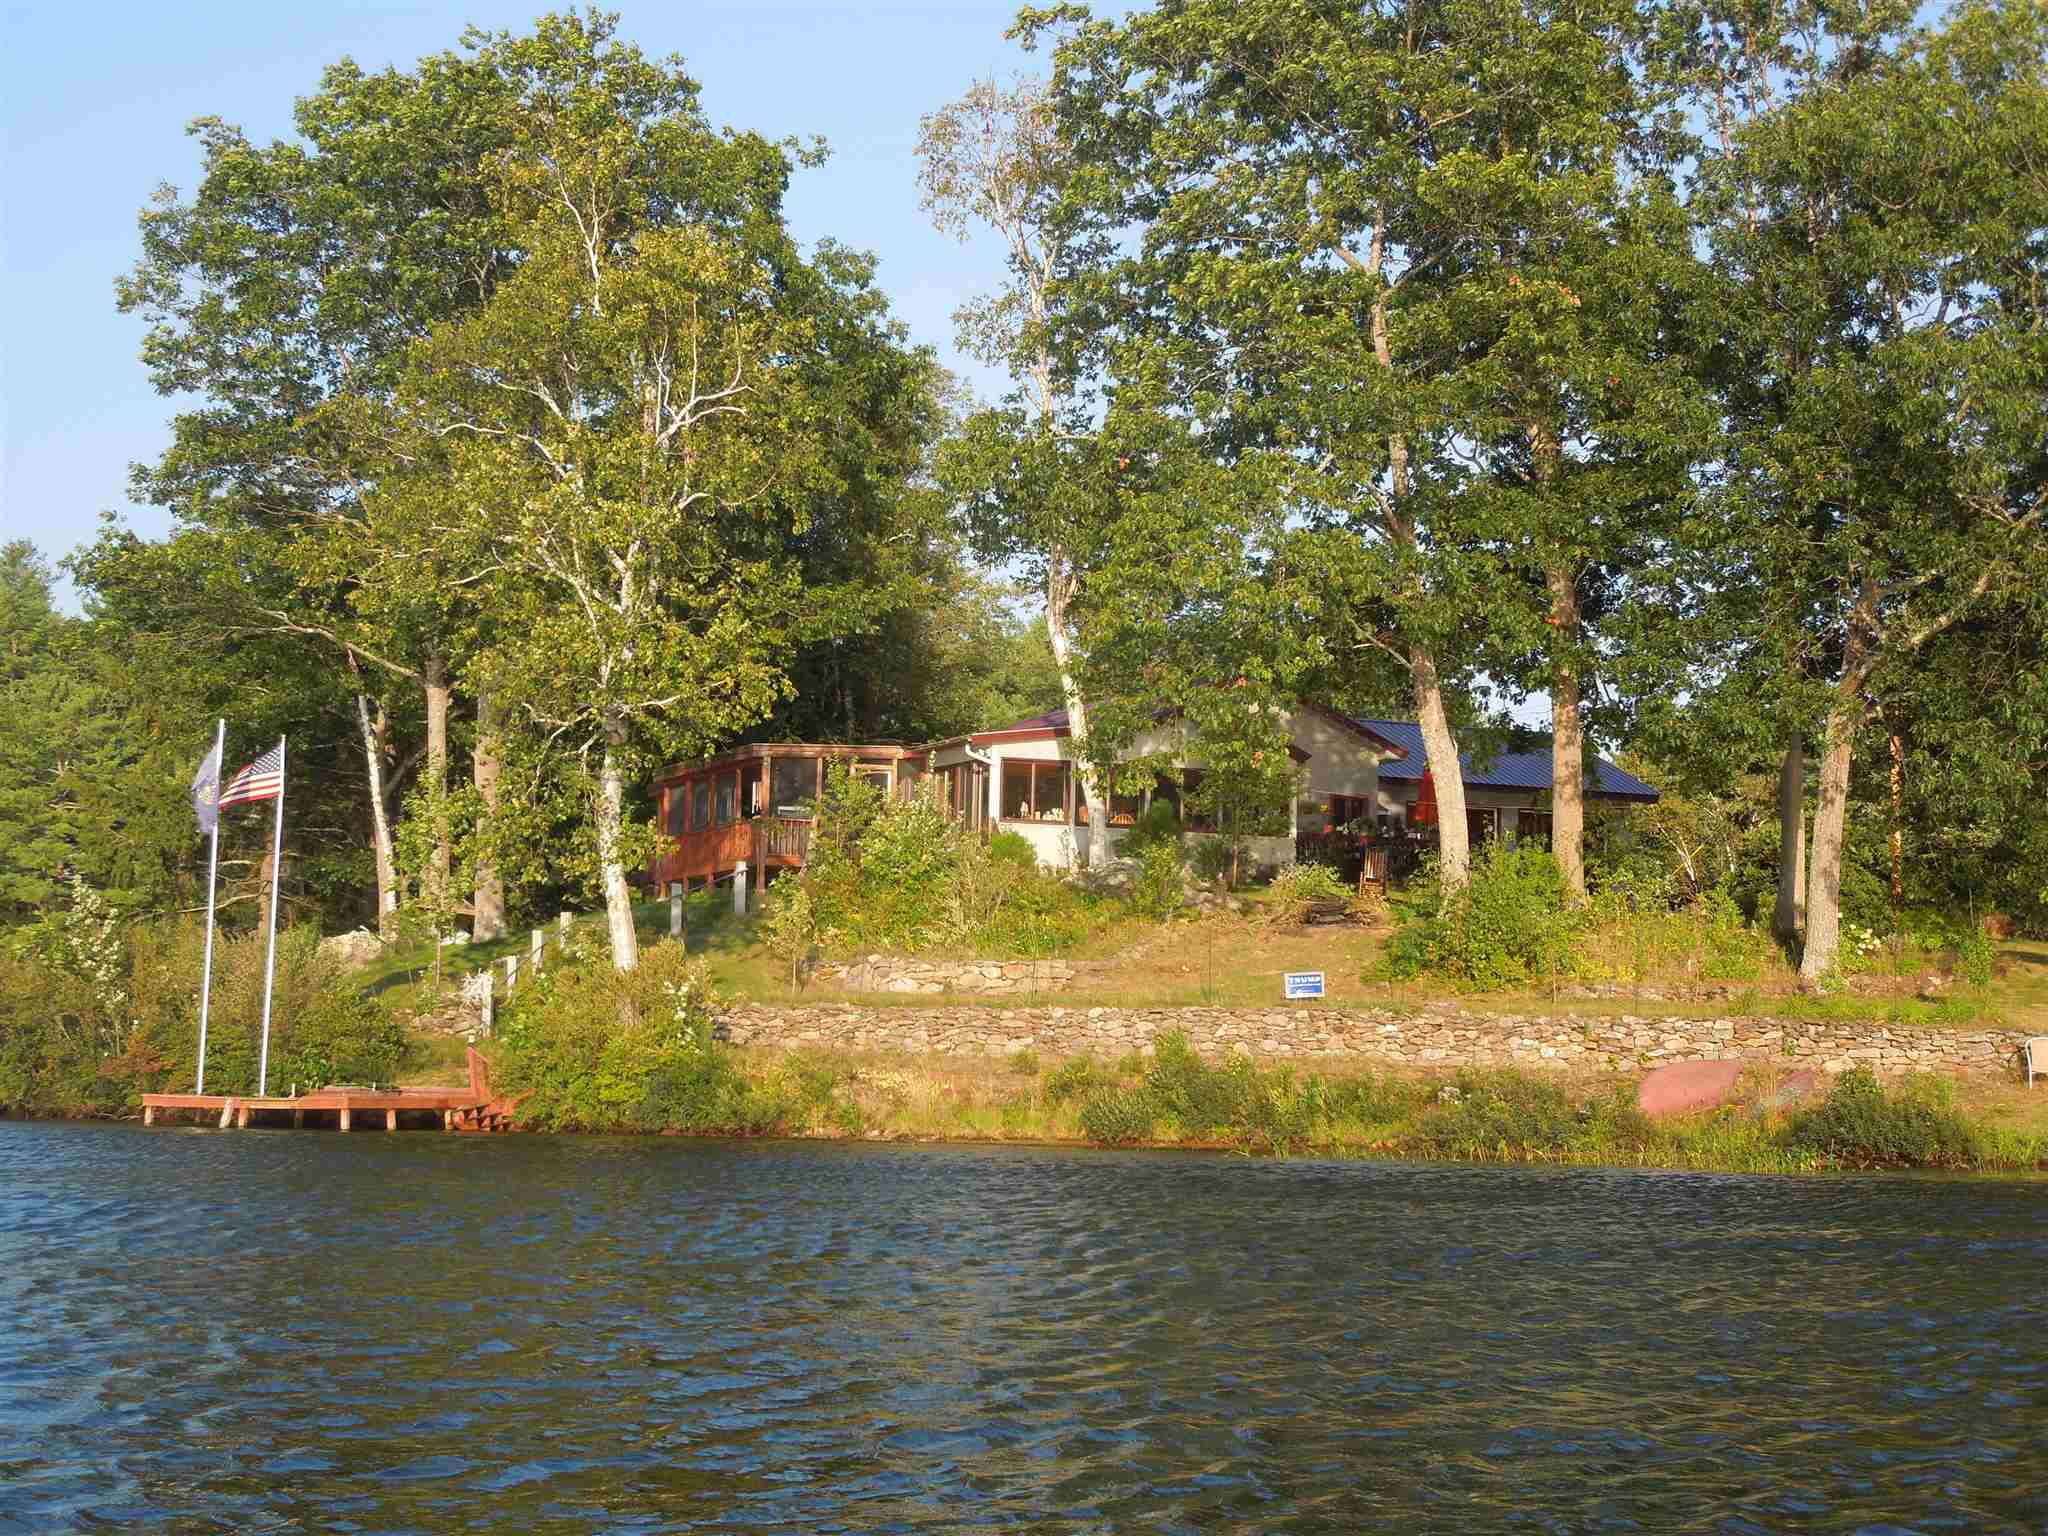 Pond Huntress Pond waterfront home for sale in Barnstead